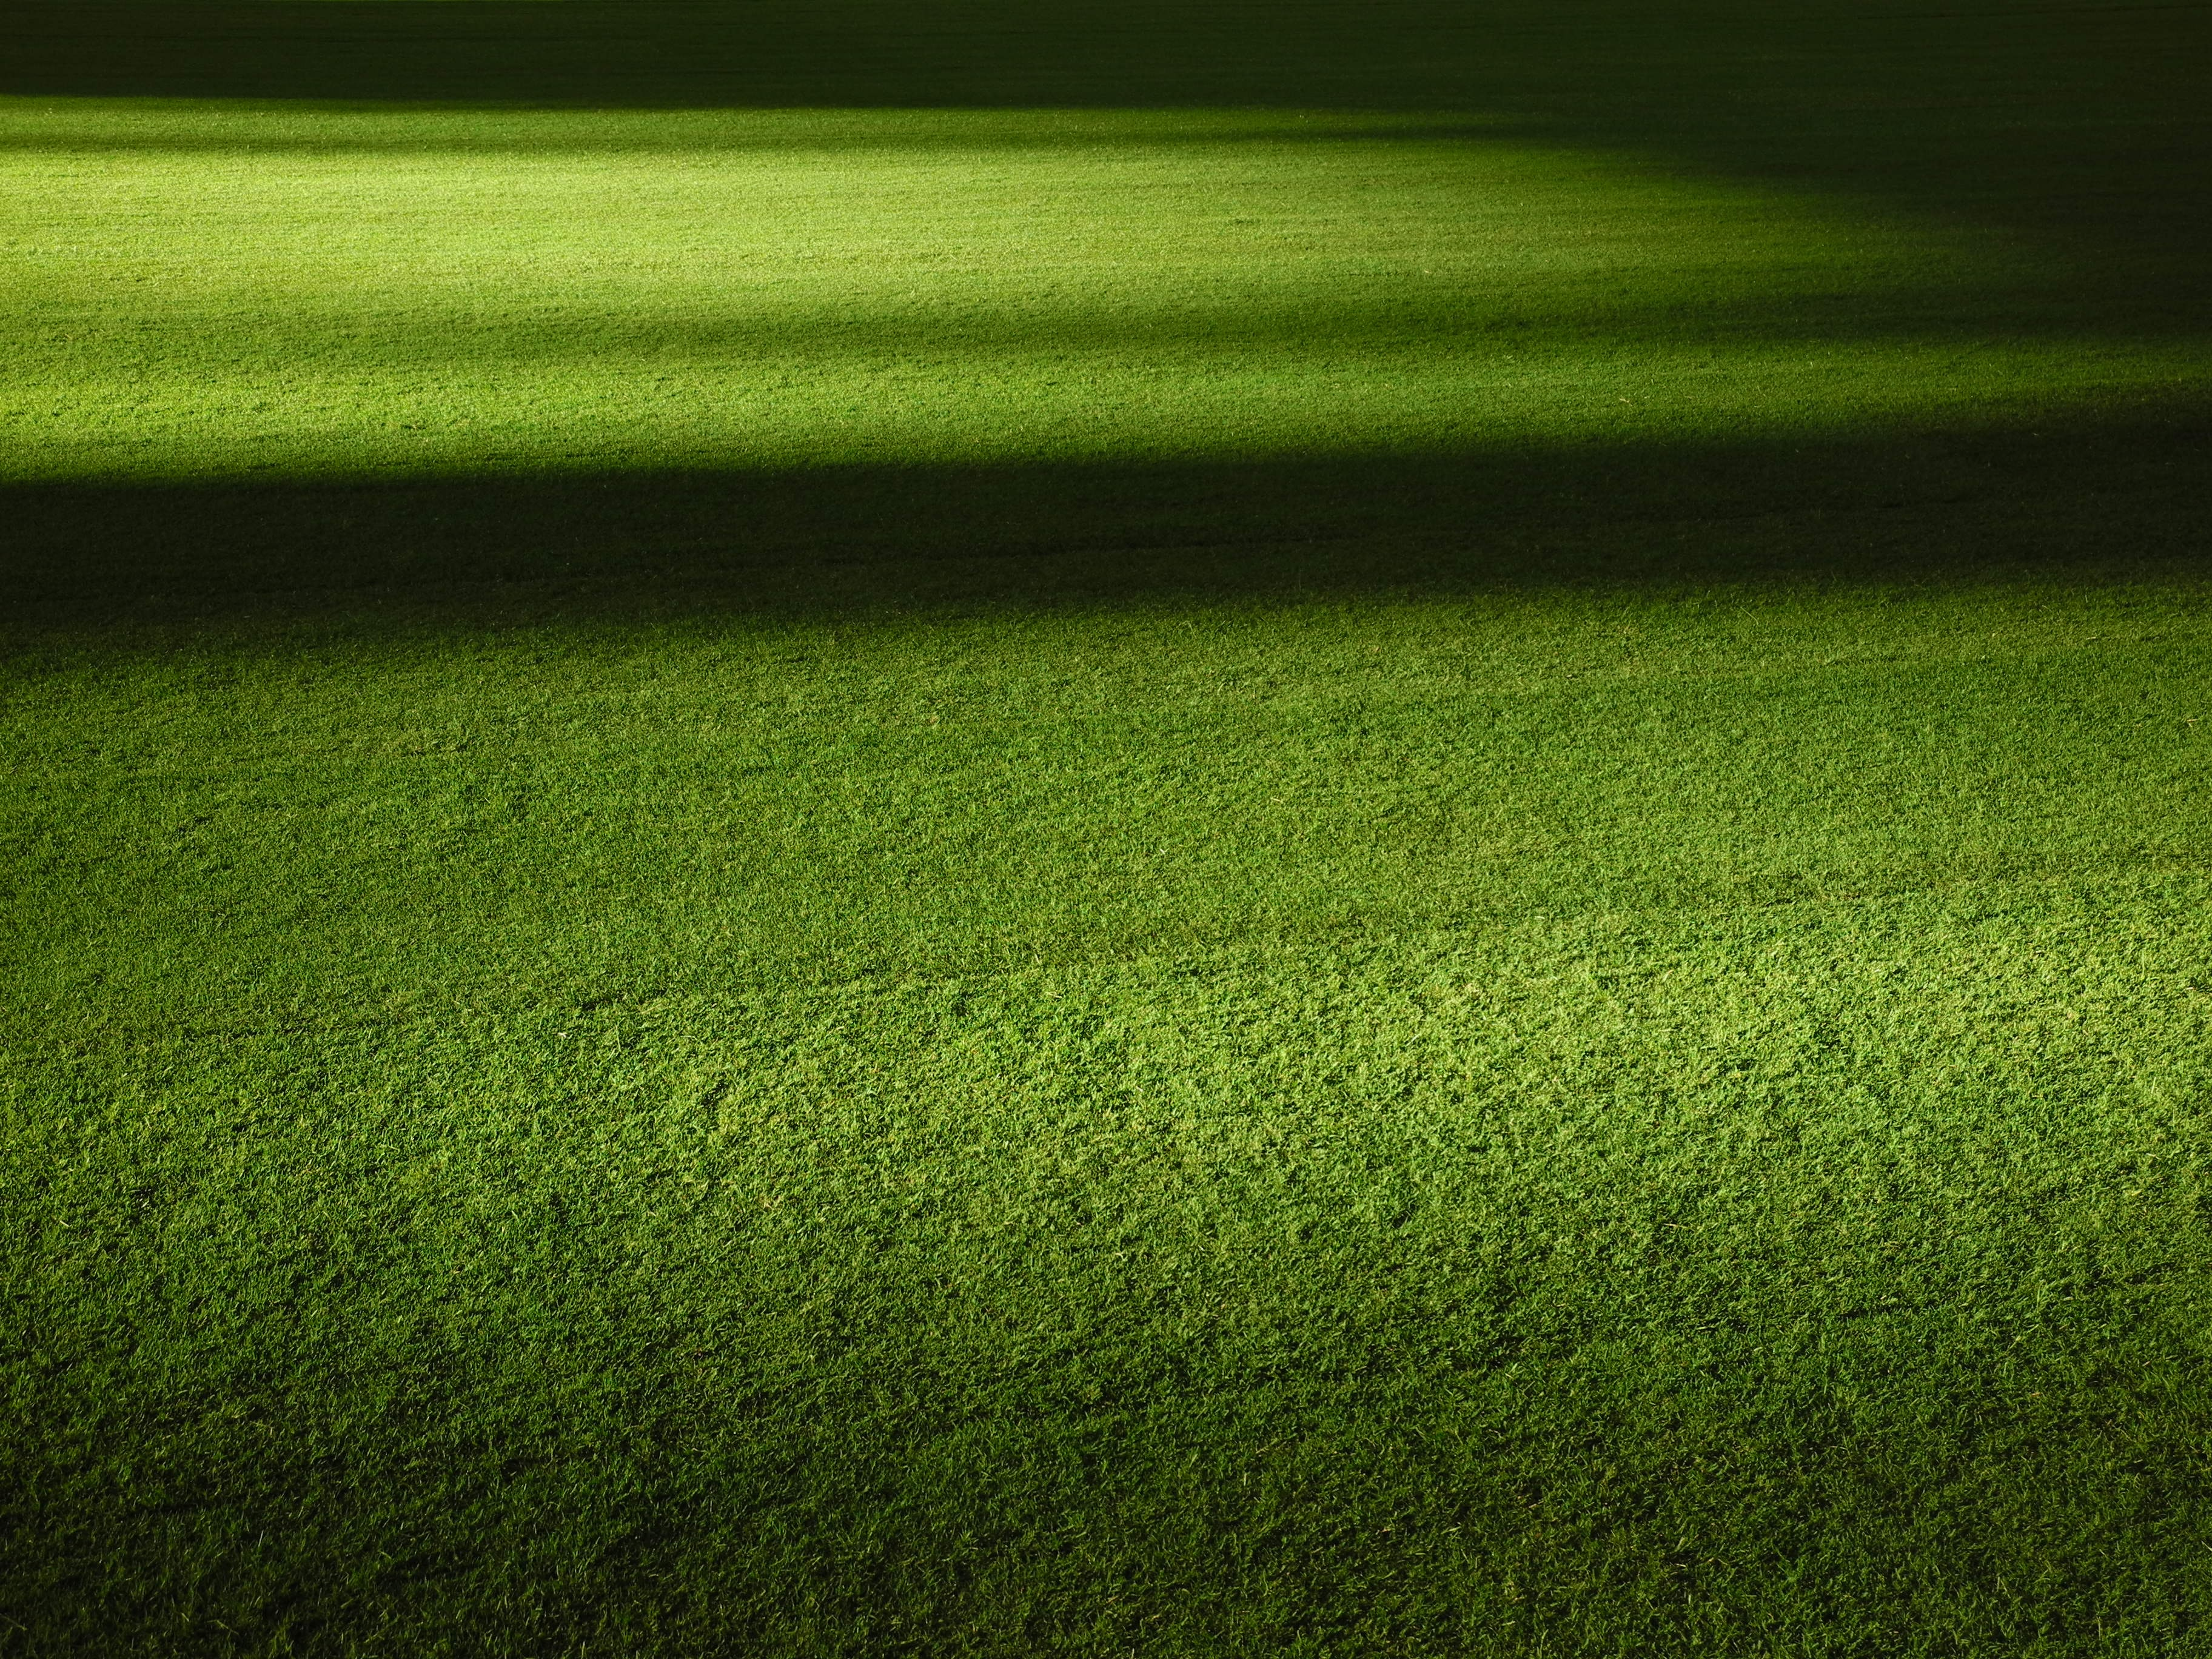 green grass field at nightime